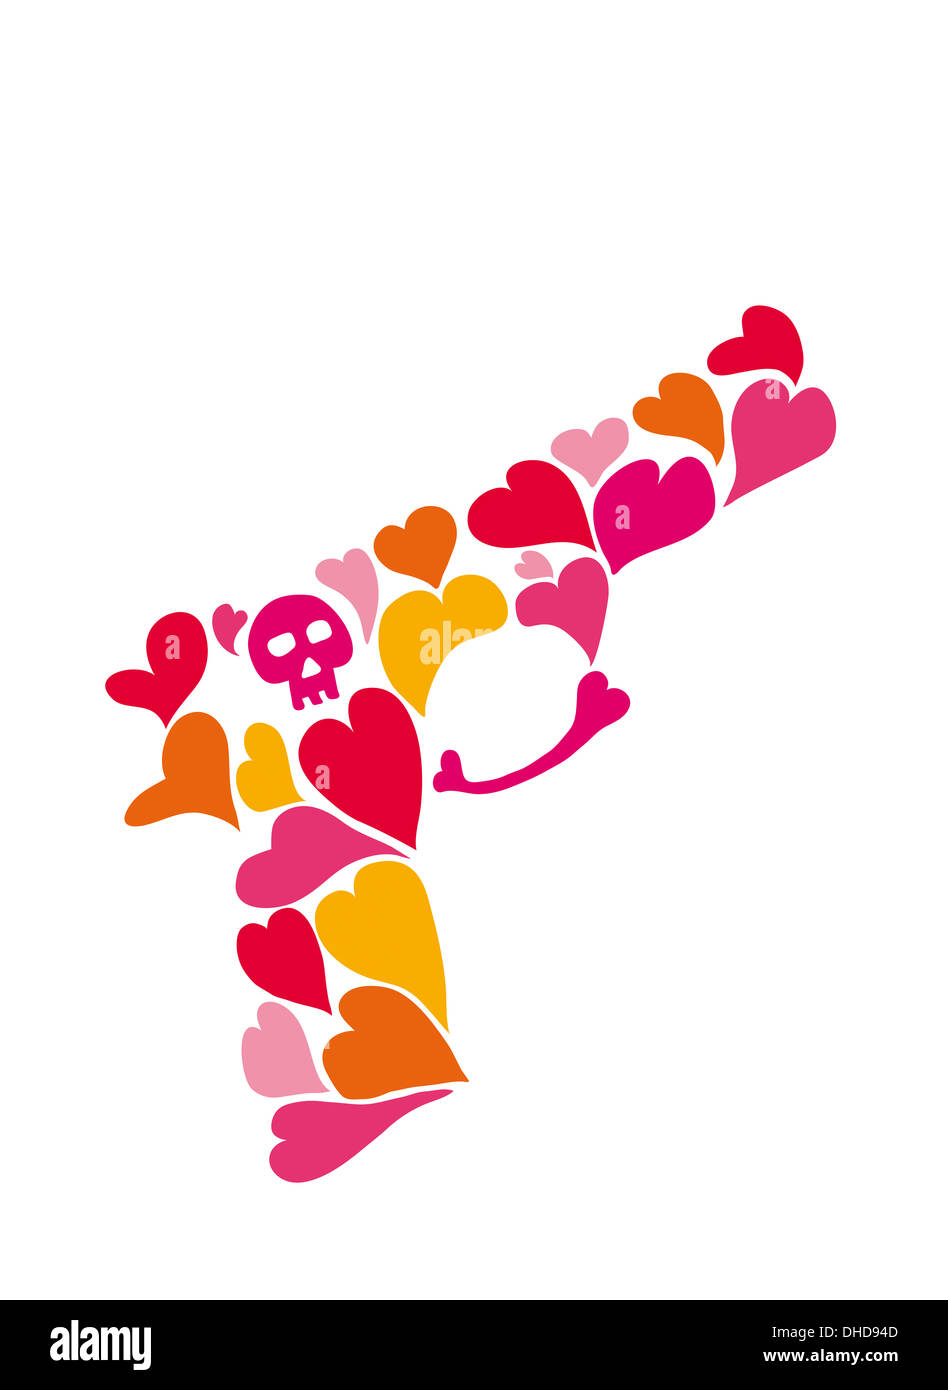 Love gun with hearts and a skull - Stock Image